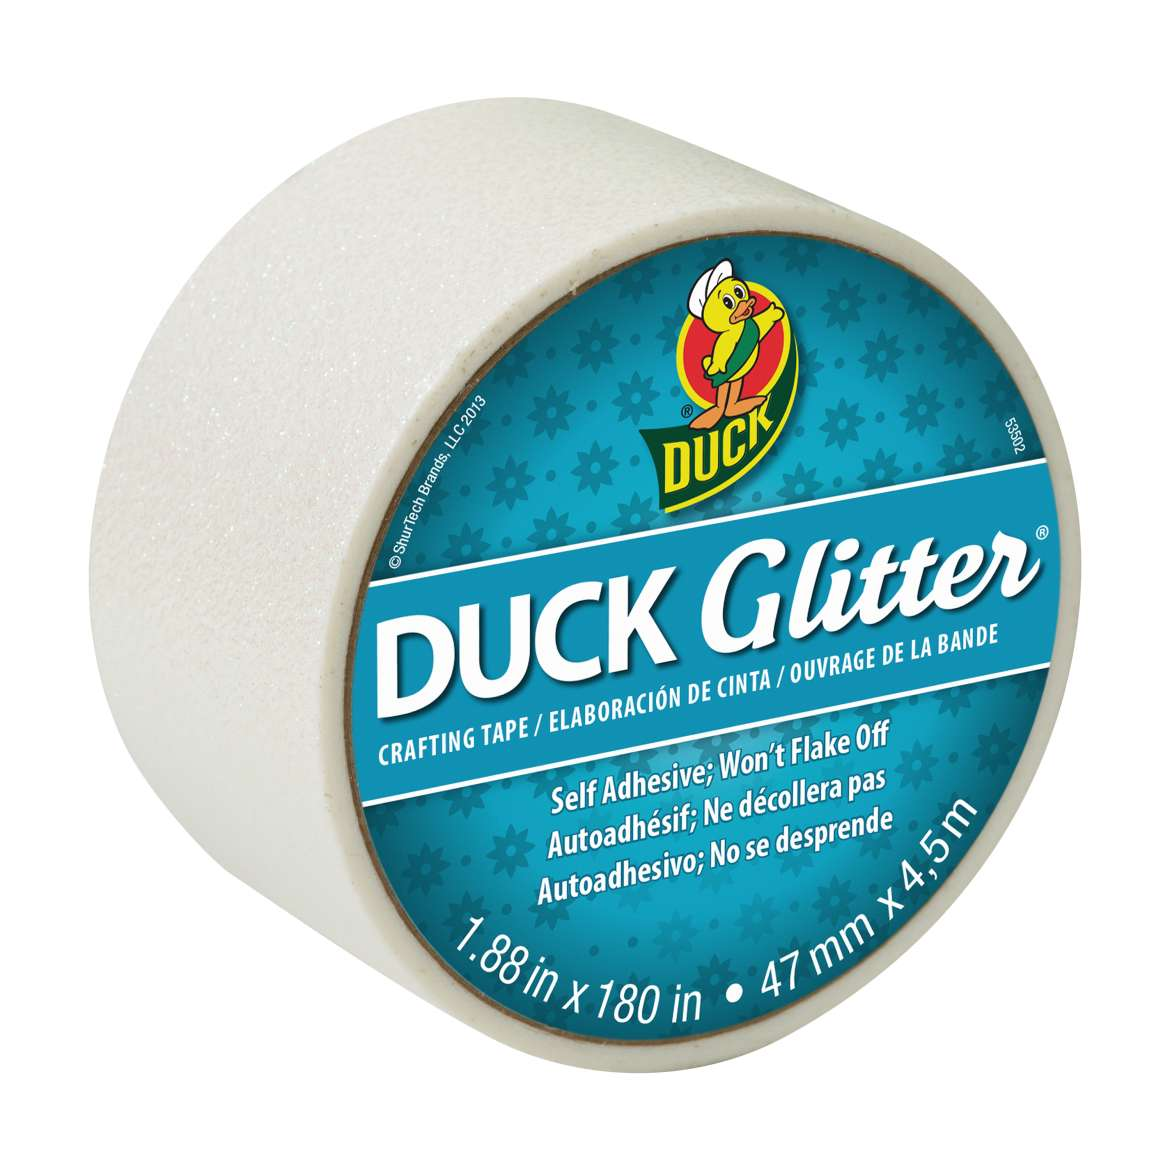 Duck Glitter® Crafting Tape - White, 1.88 in. x 5 yd. Image